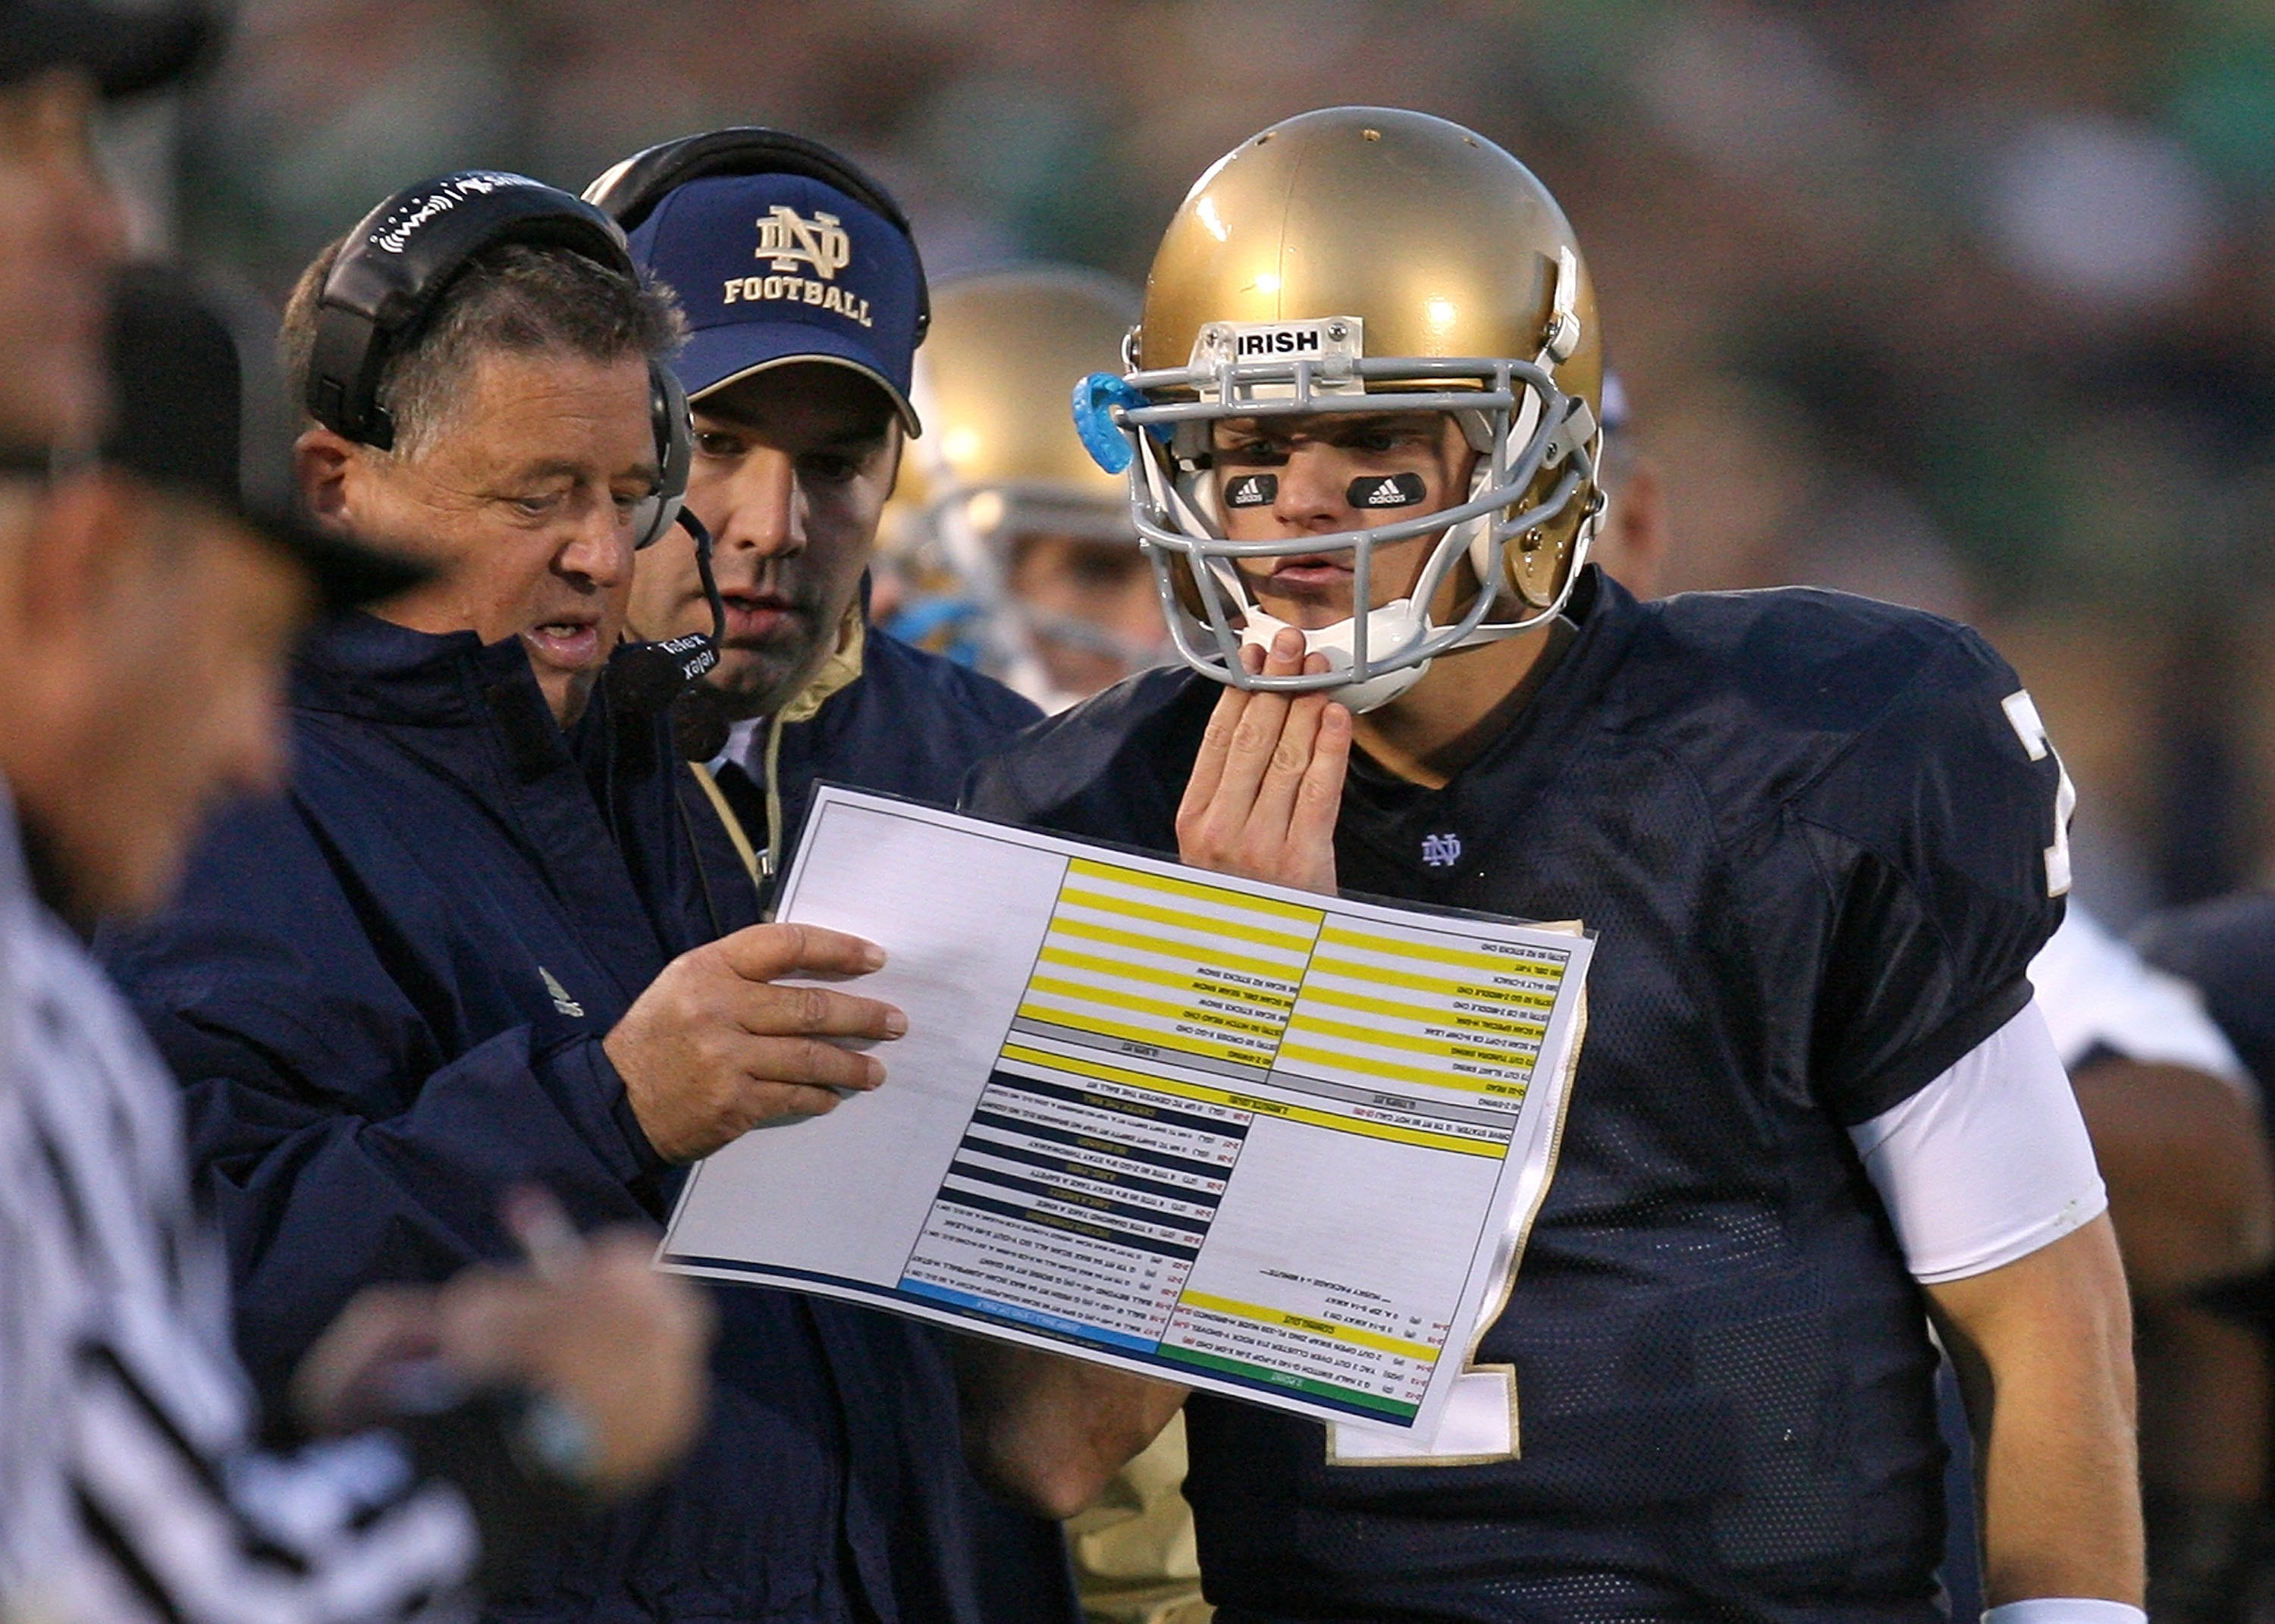 SOUTH BEND, IN - OCTOBER 17: Head coach Charlie Weis of the Notre Dame Fighting Irish gives a play to quarterback Jimmy Clausen #7 during a game against the USC Trojans at Notre Dame Stadium on October 17, 2009 in South Bend, Indiana. USC defeated Notre D